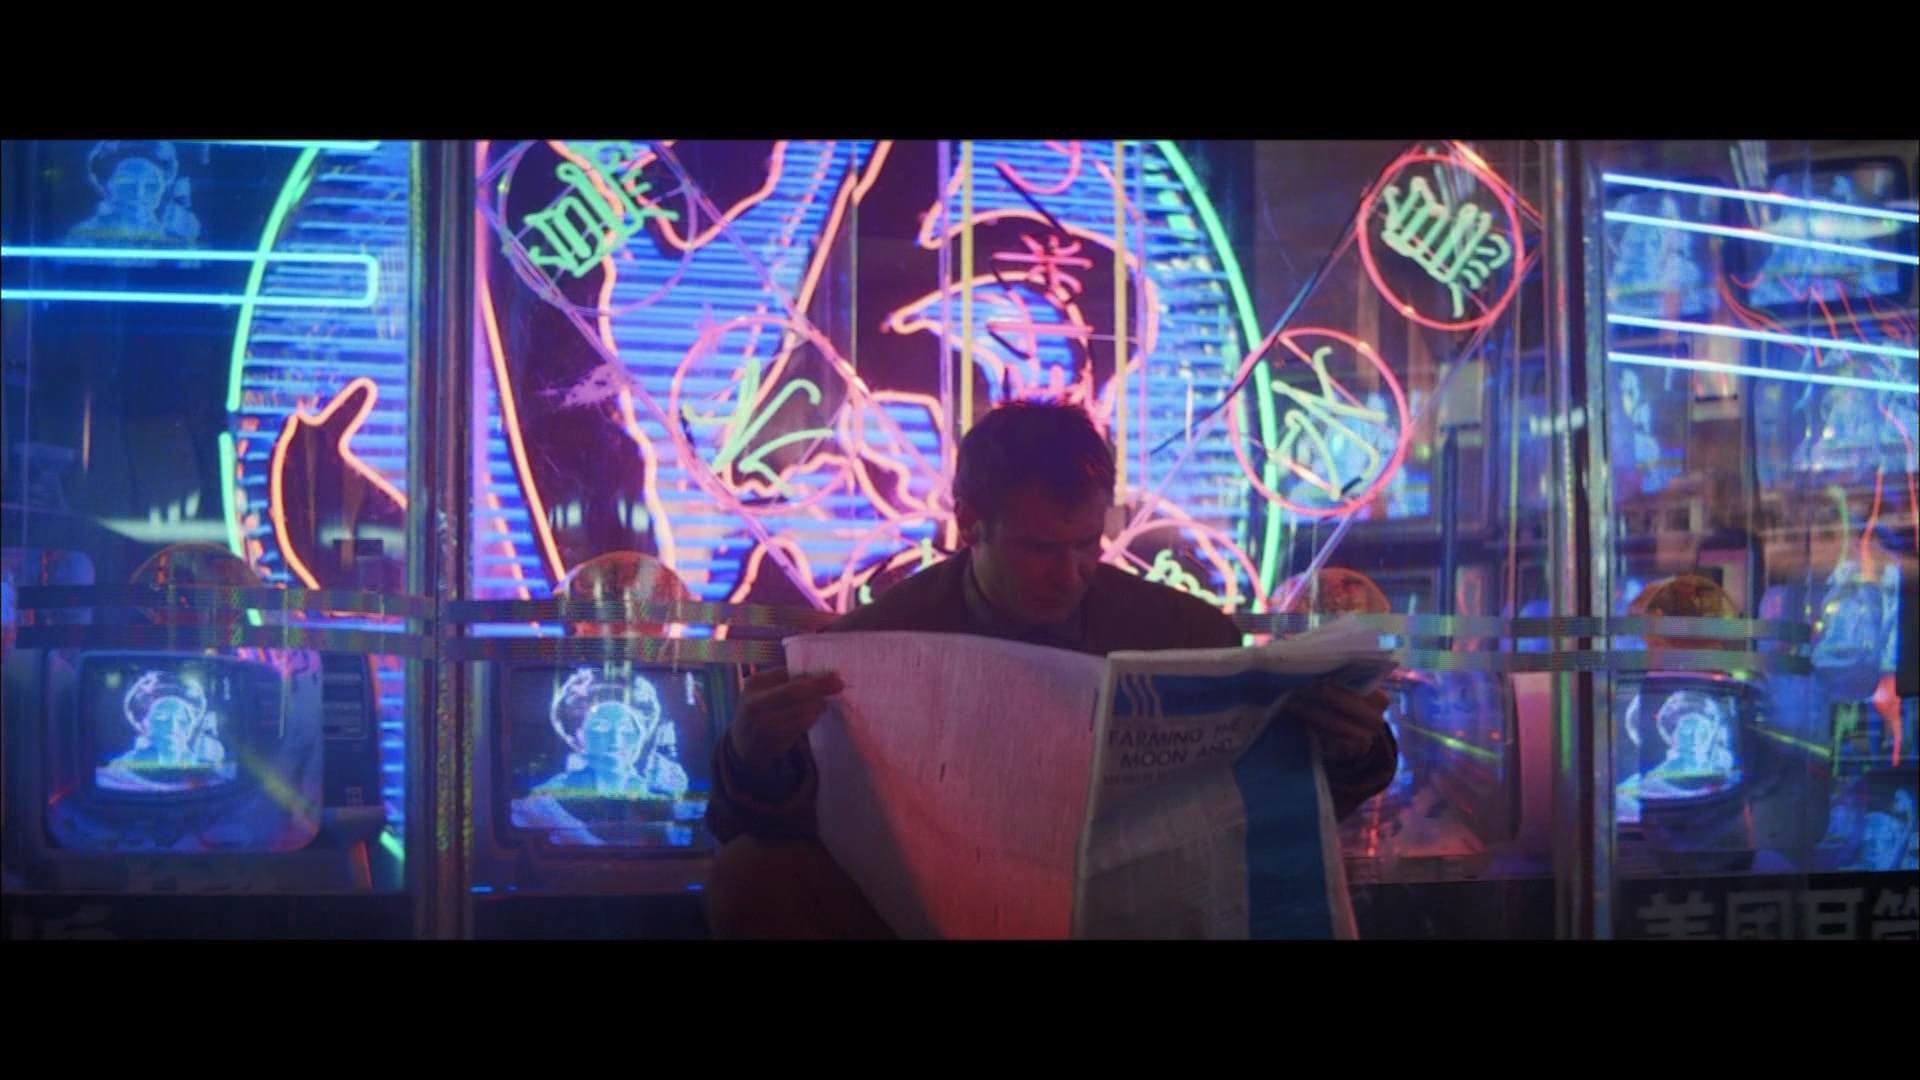 Film harrison ford black and white neon signs exblad for Blade runner